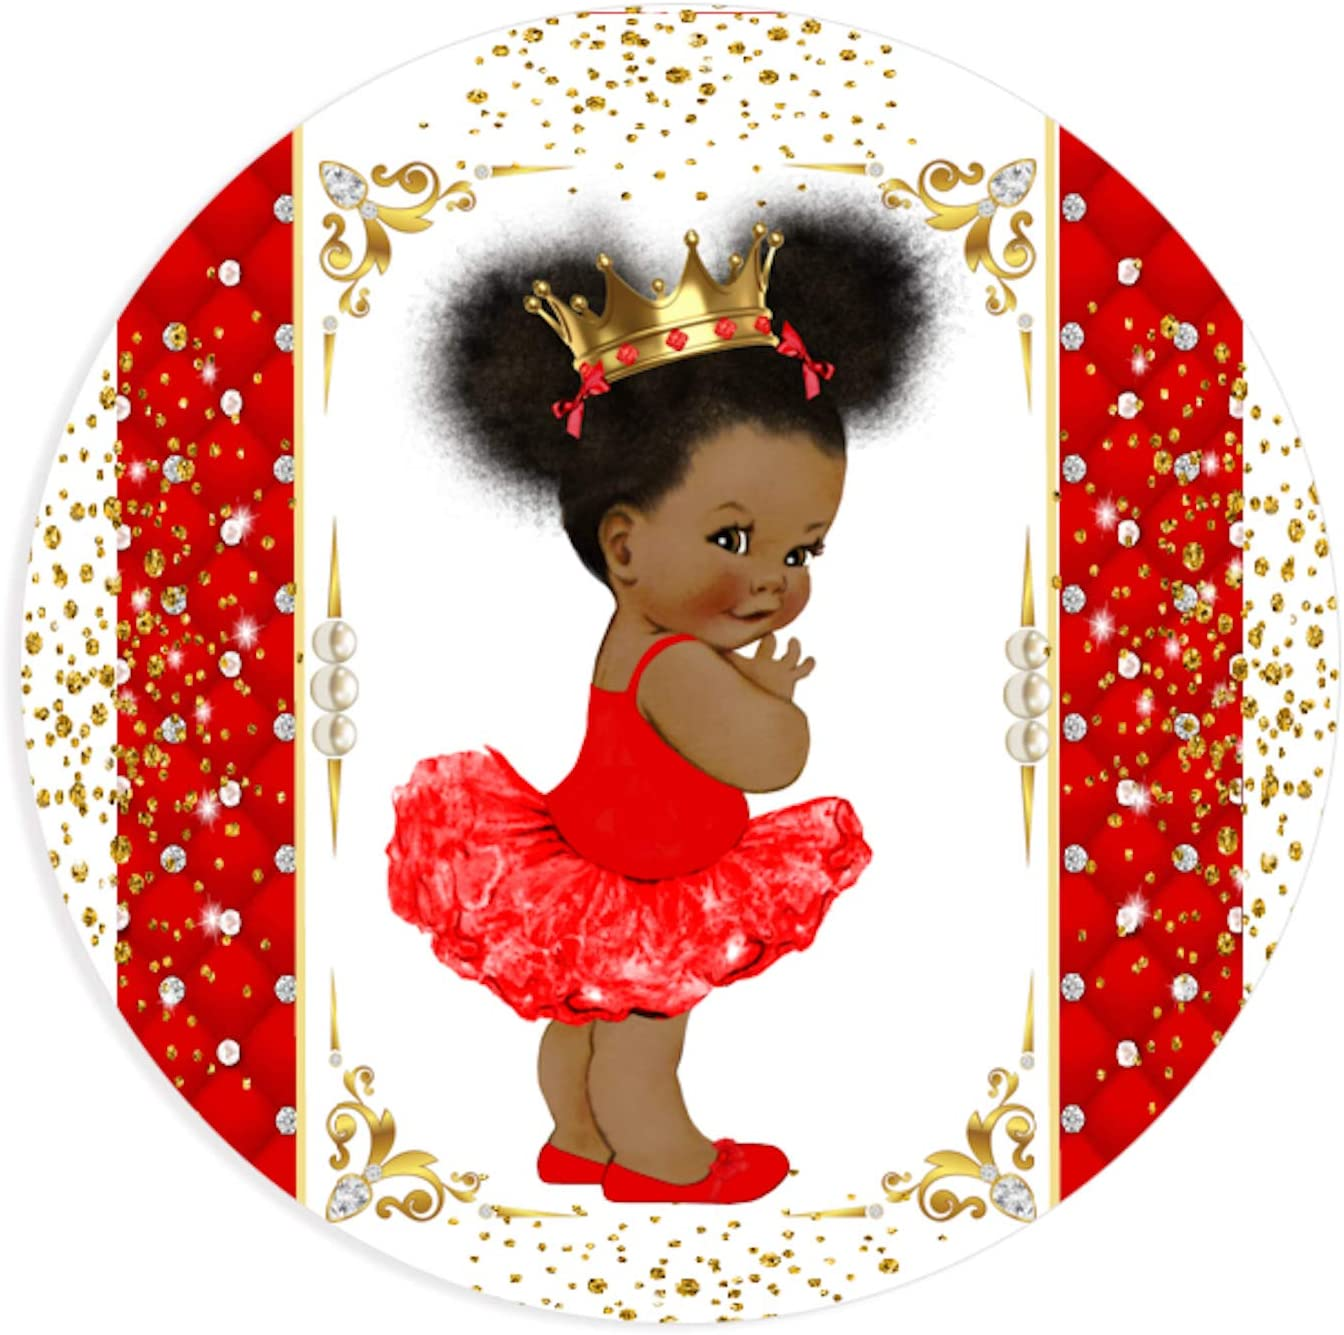 12 Royal Ethnic Princess Birthday Party Baby Shower Hershey Bar Wrapper Gold Red